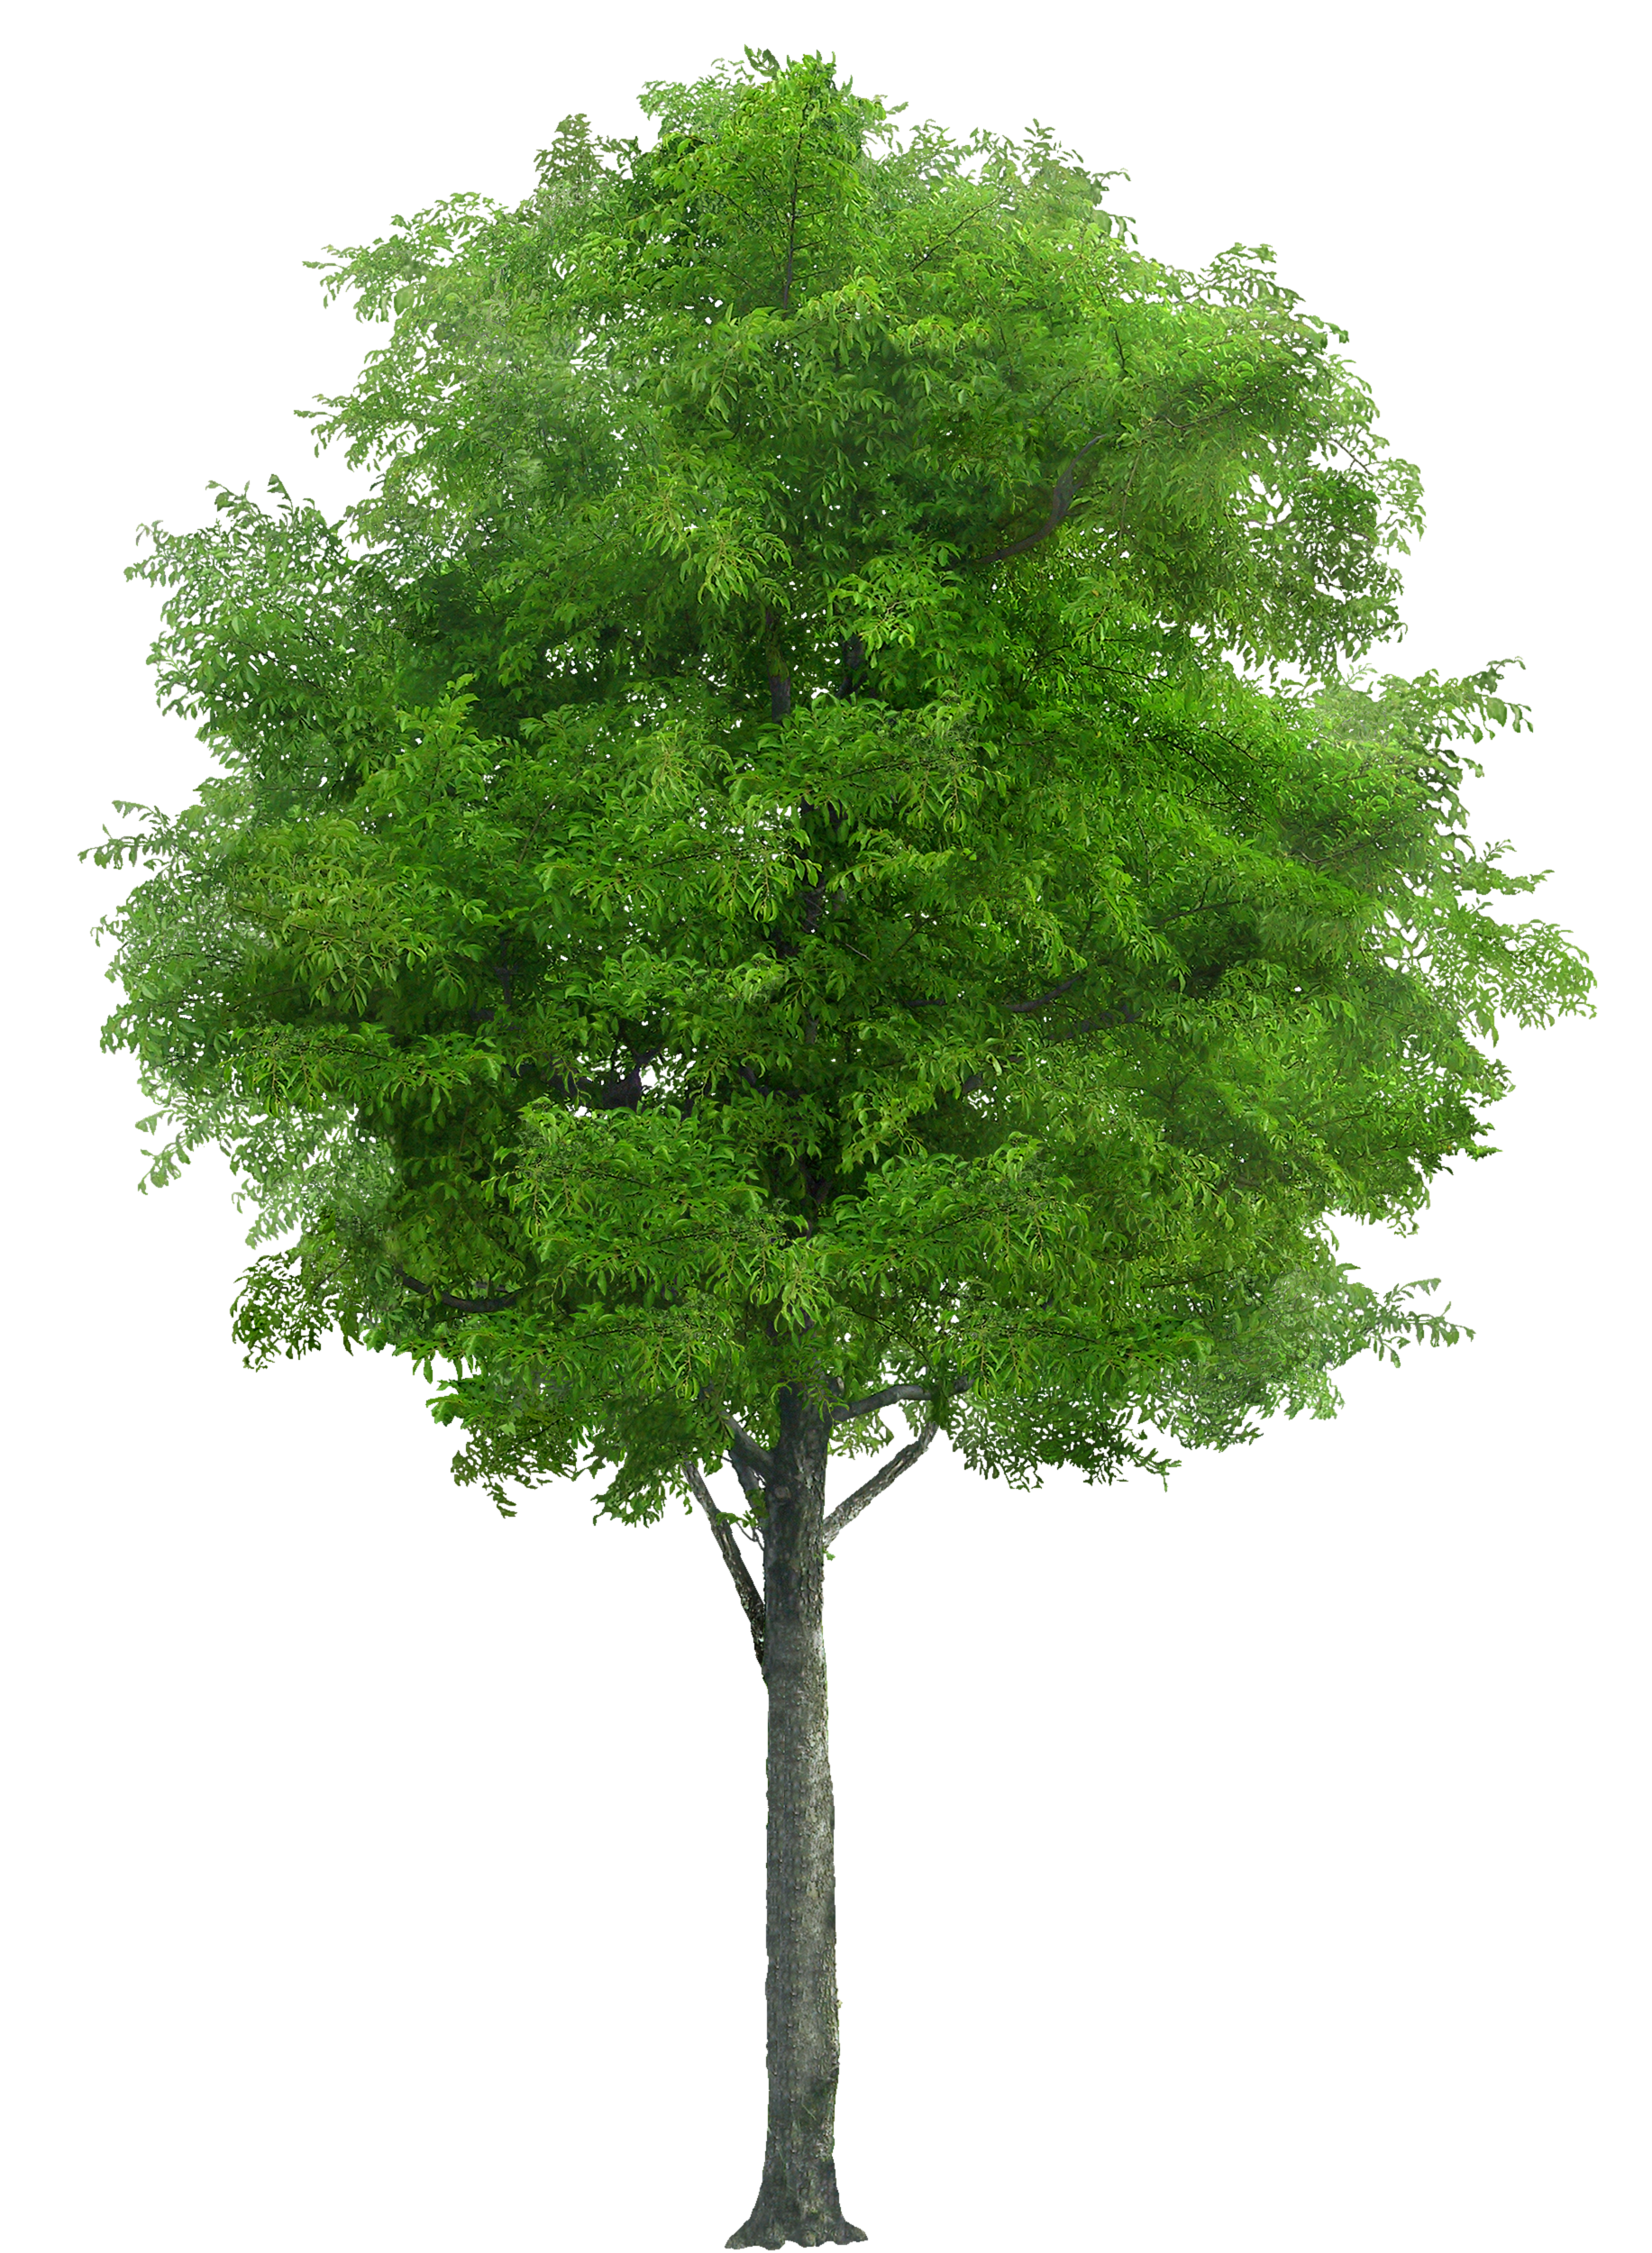 Willow Tree PNG HD - 130439